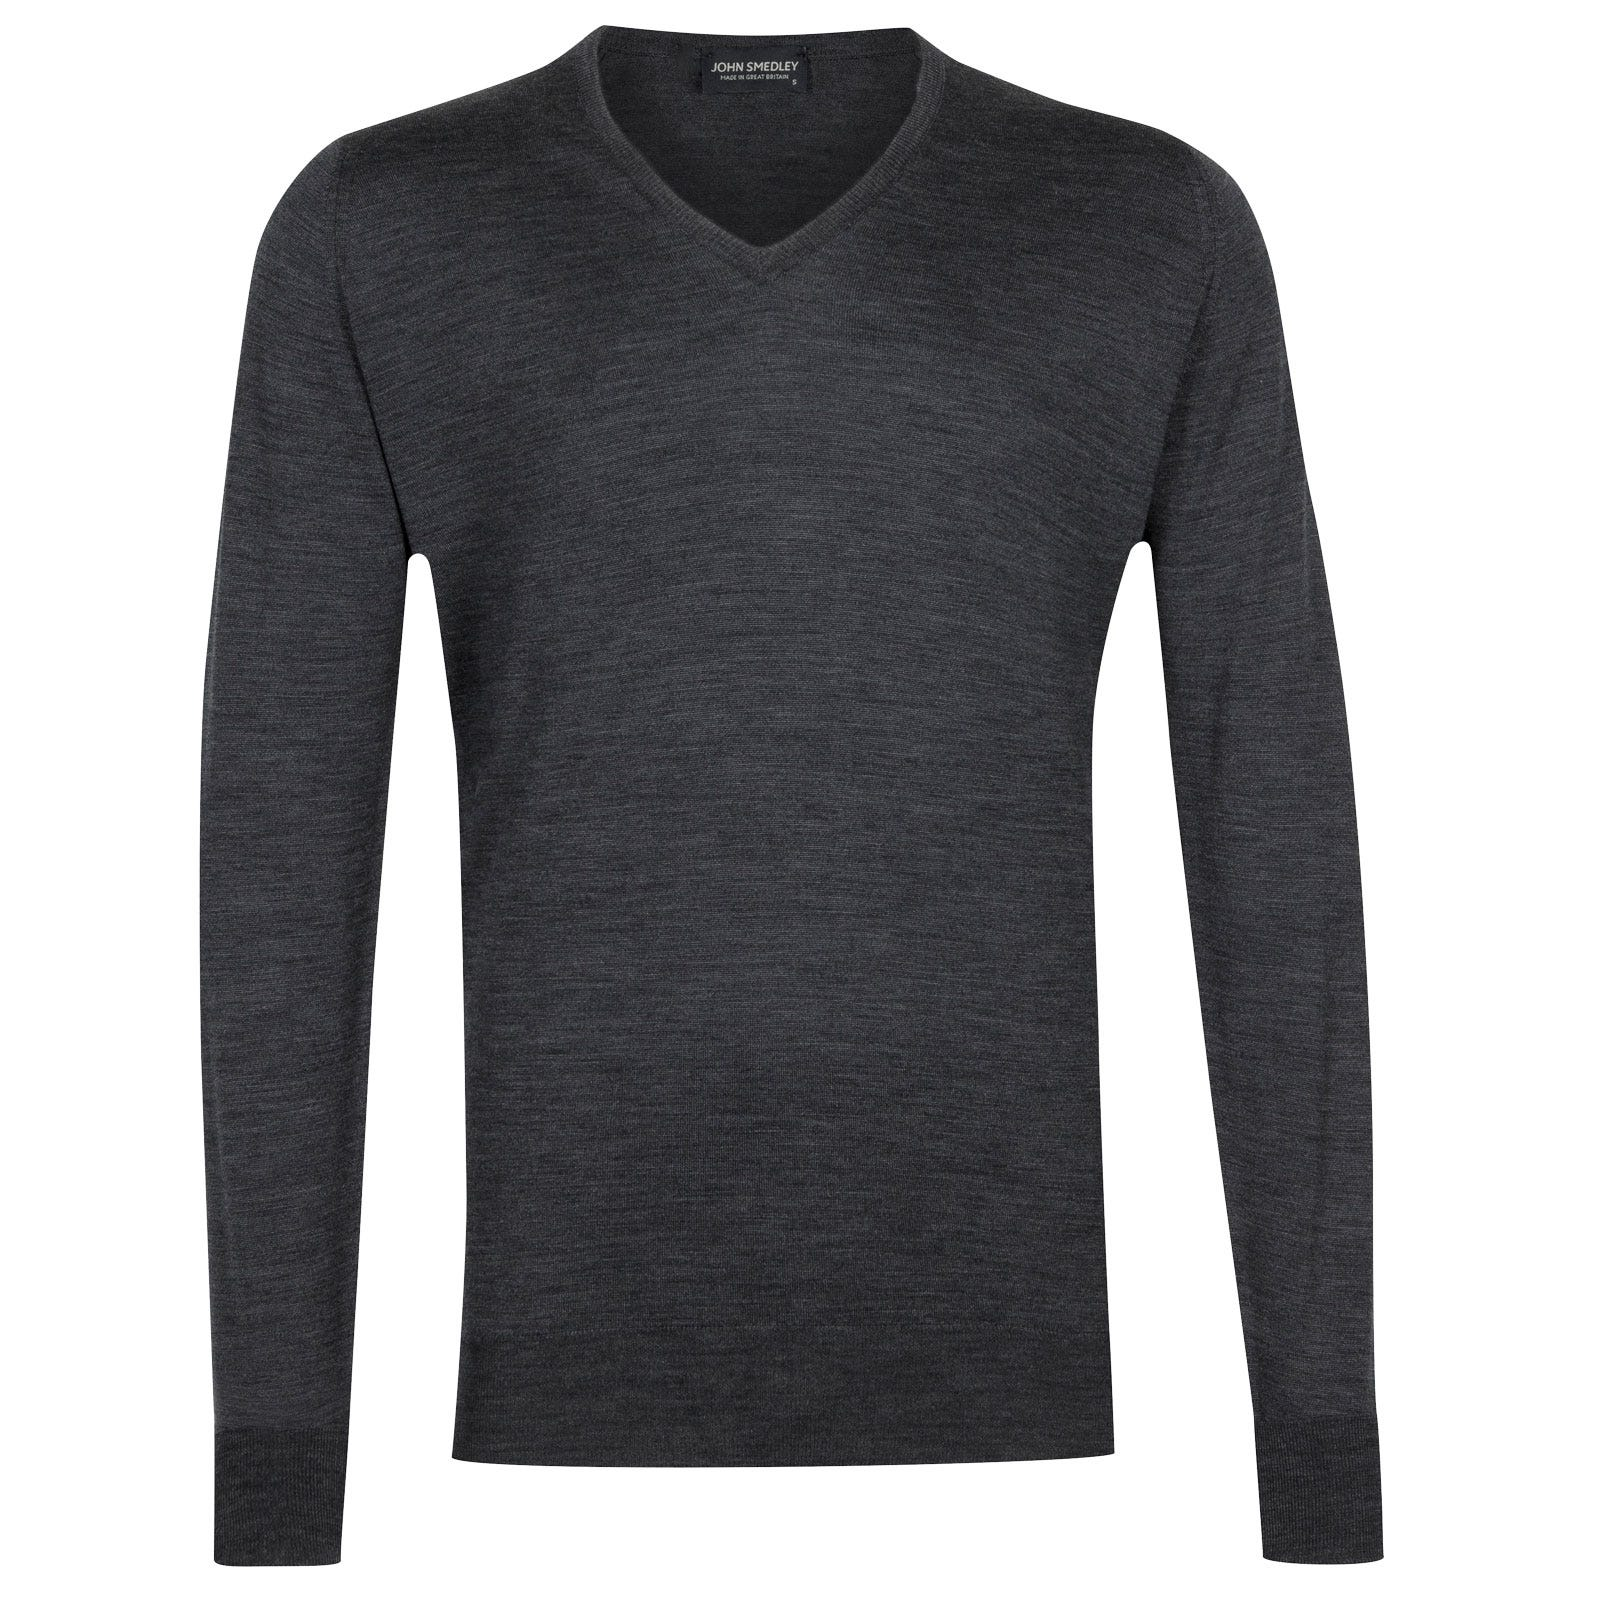 John Smedley Blenheim Merino Wool Pullover in Charcoal-XL